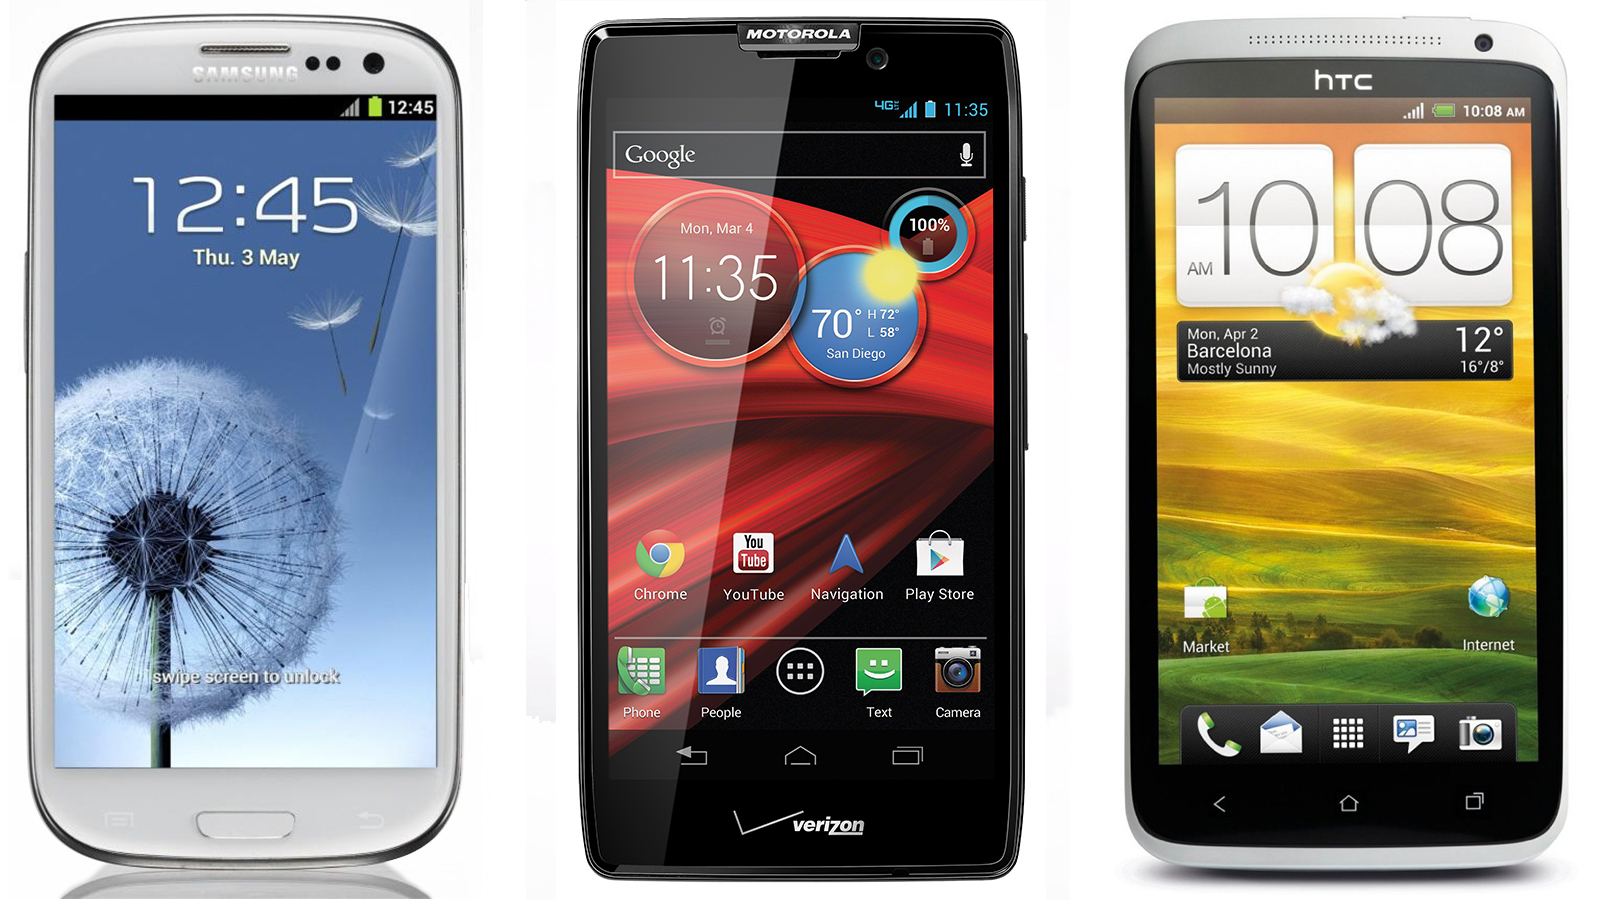 Click here to read How Does the Motorola Droid RAZR HD Compare to the Best Android Phones?